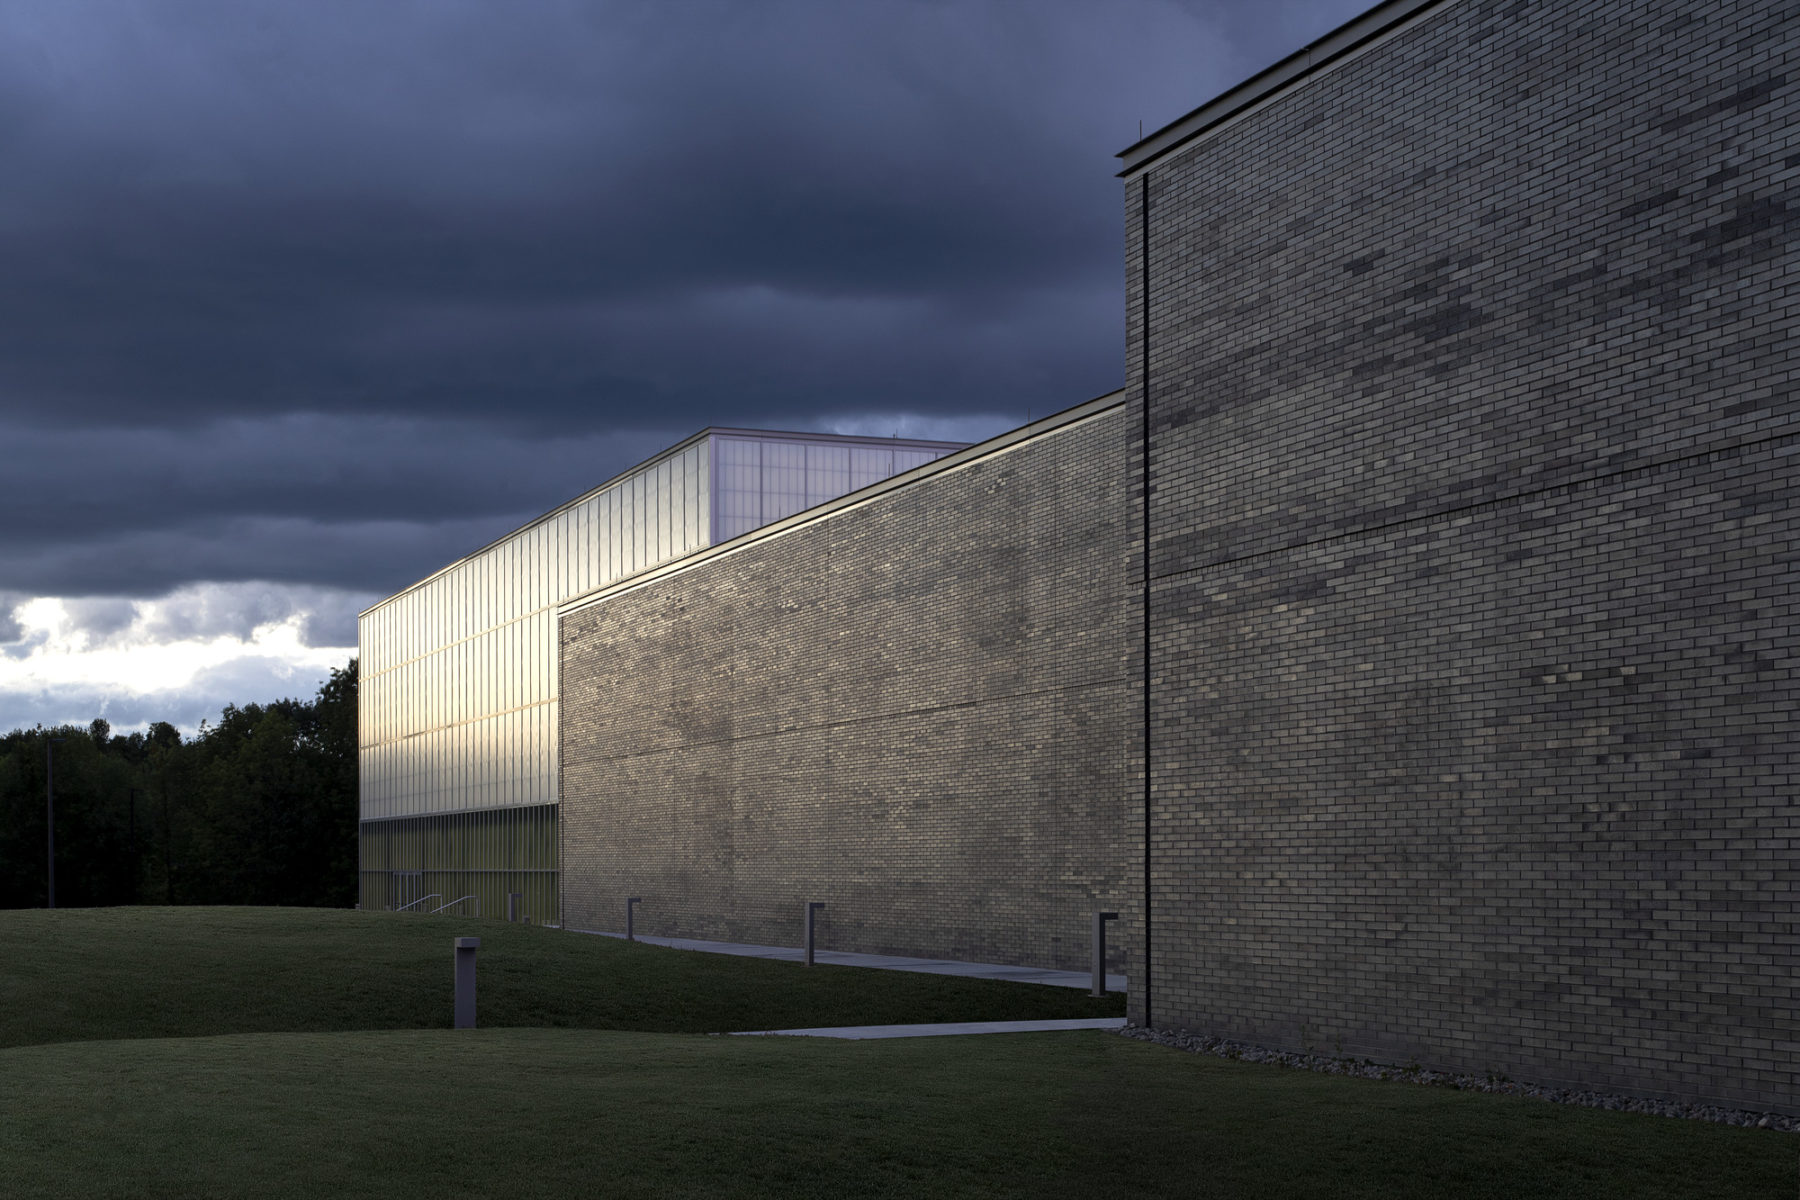 exterior photo of building - volumes of space are expressed in gray brick and curtainwall